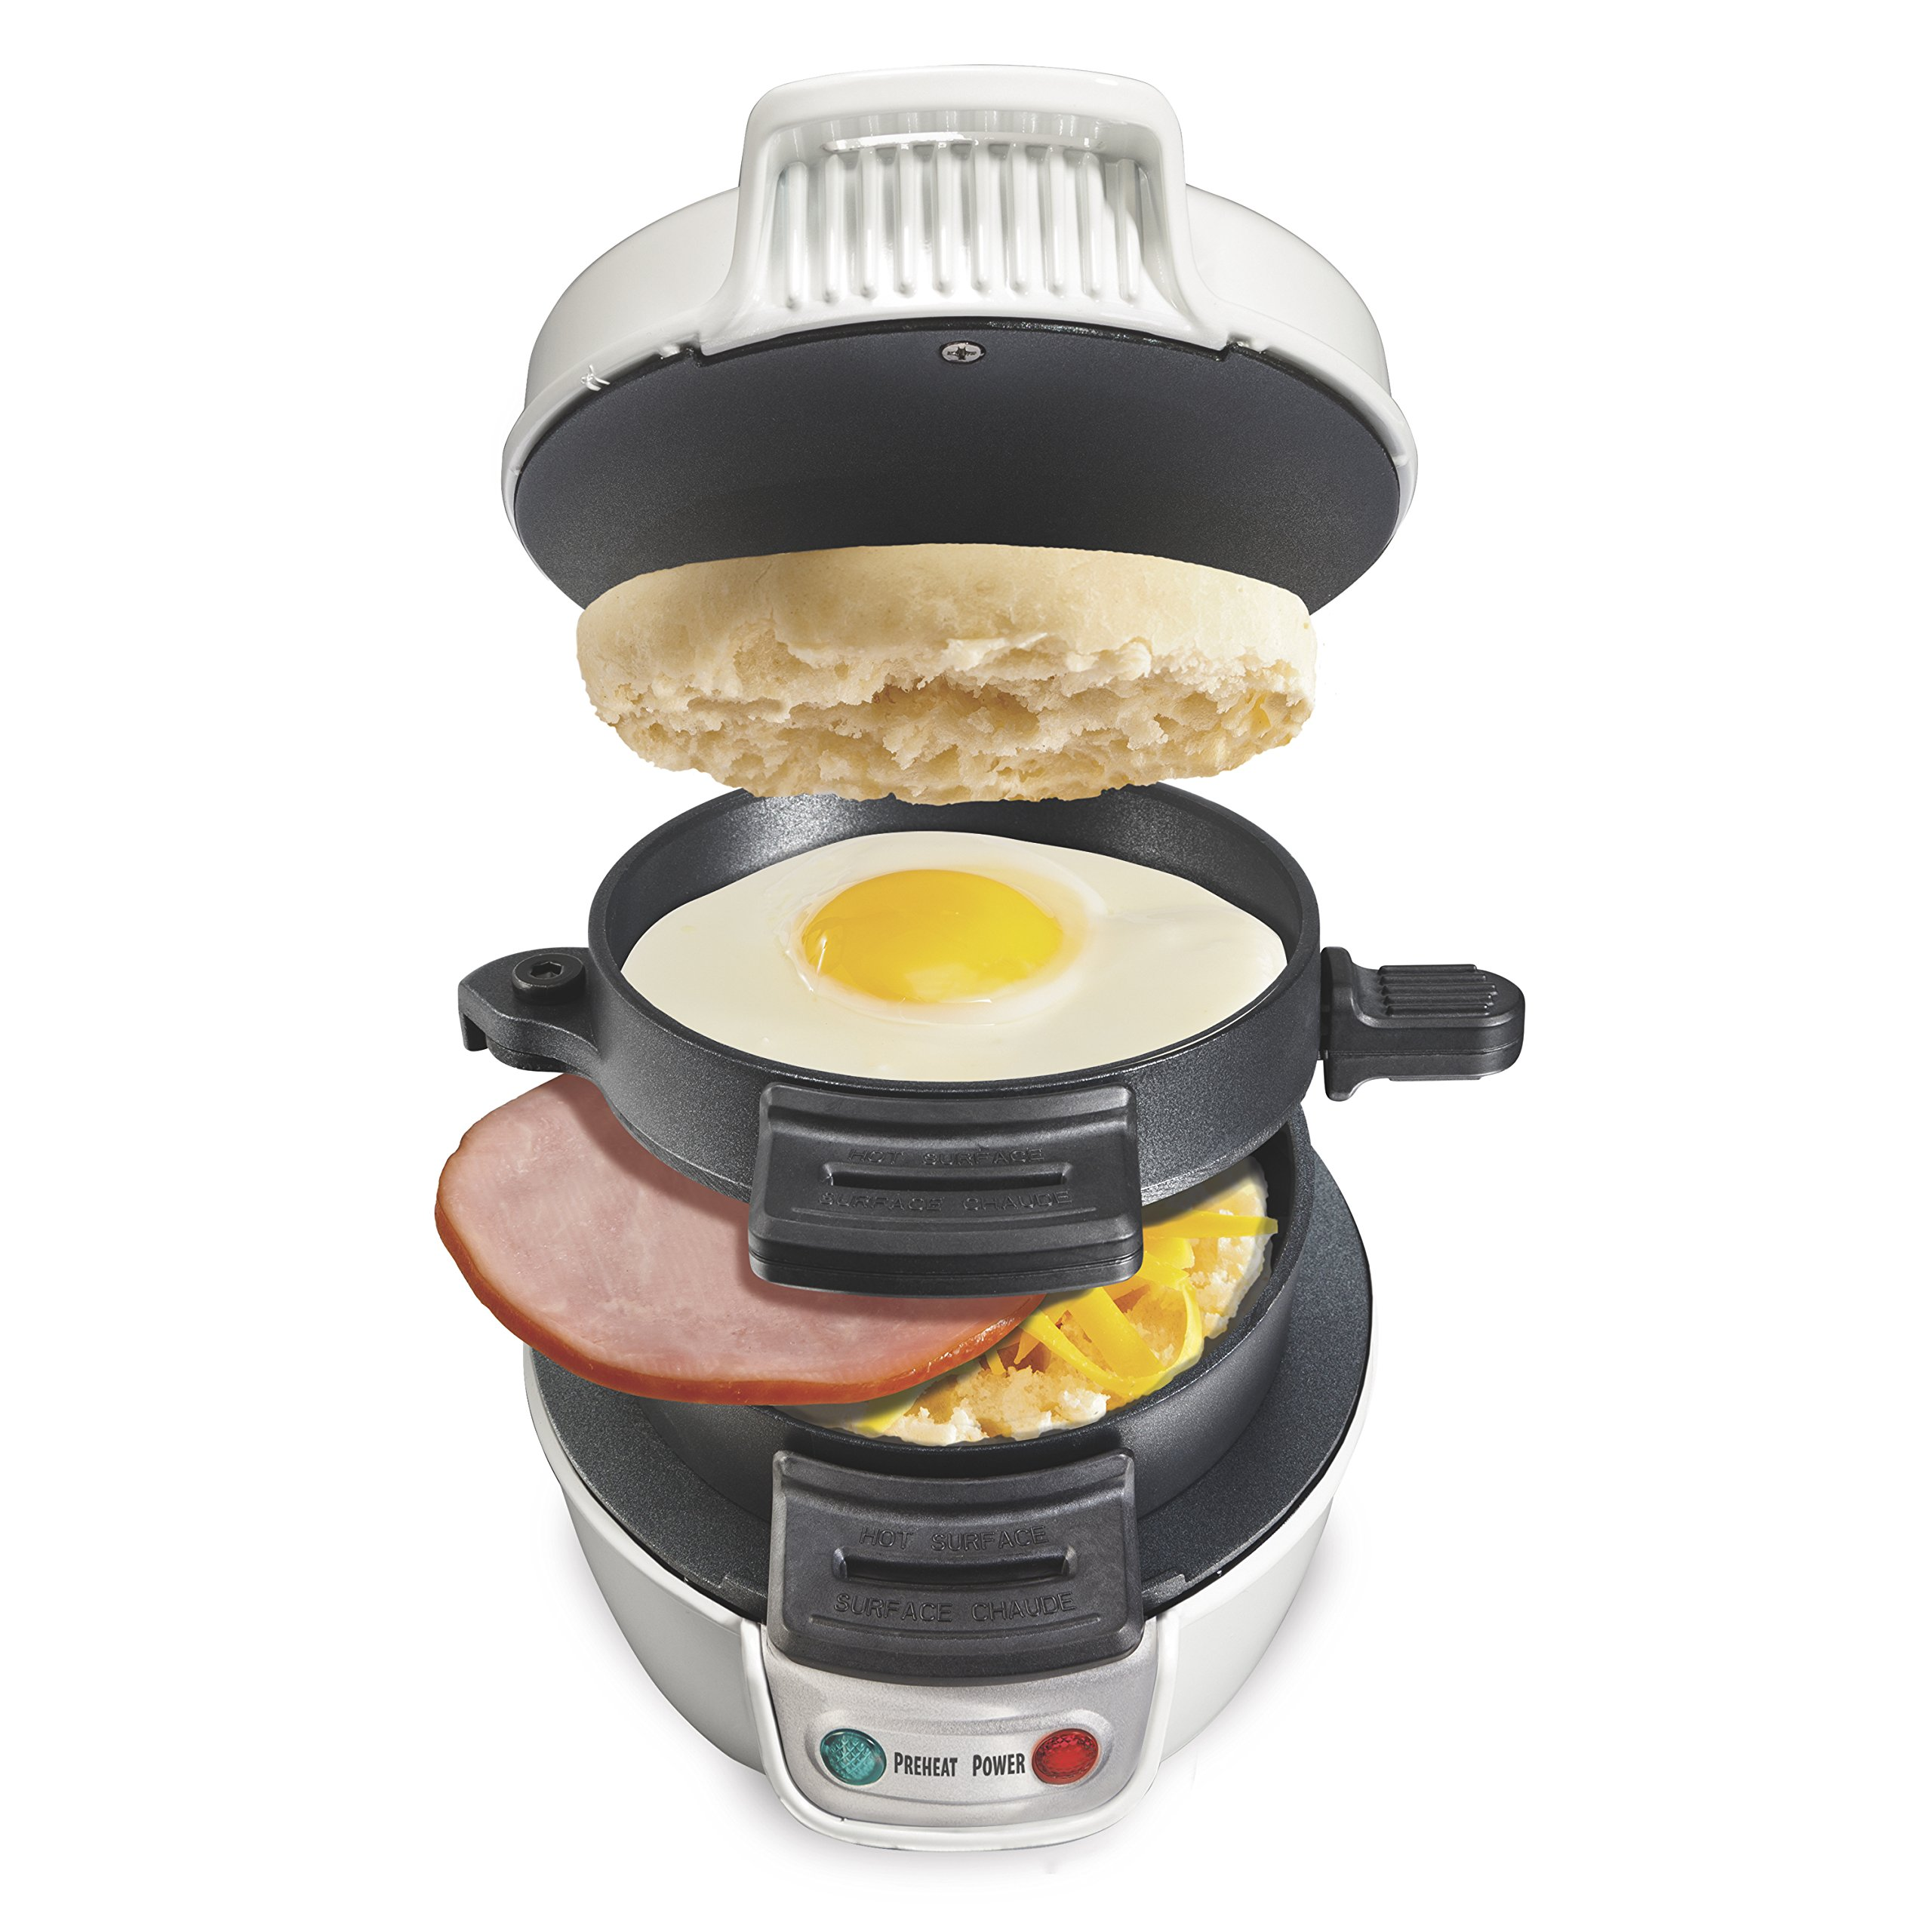 Proctor Silex 25479 Breakfast Sandwich Maker, White by Proctor Silex